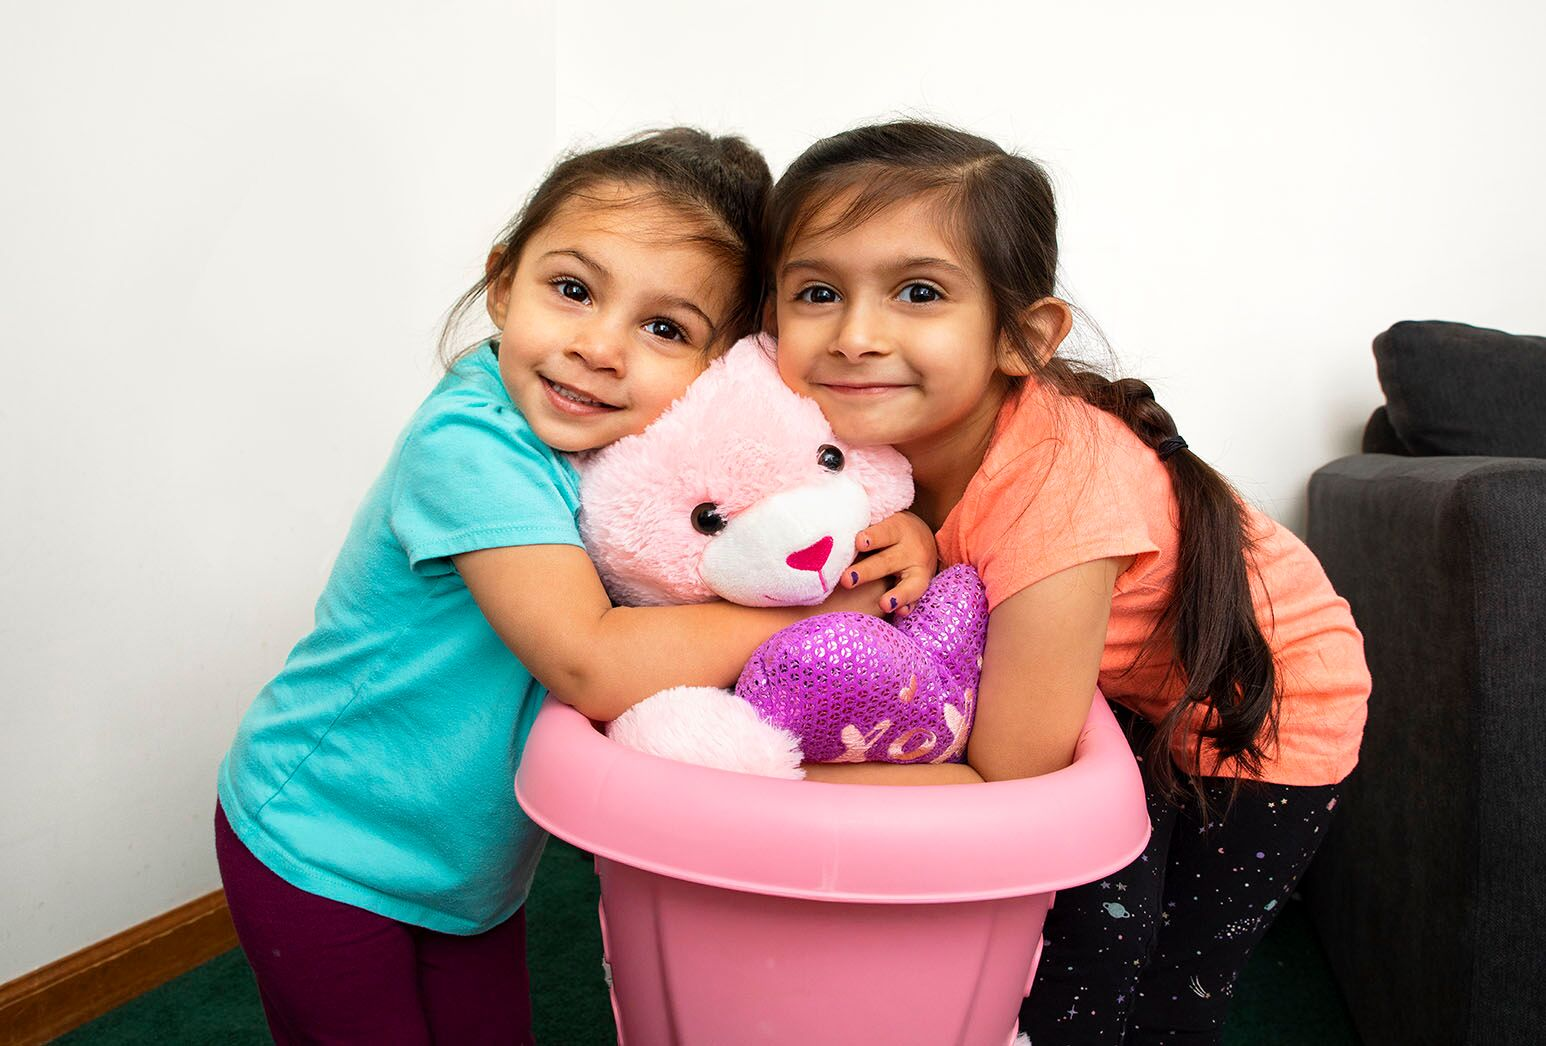 Two young girls with dark hair hugging a teddy bear.